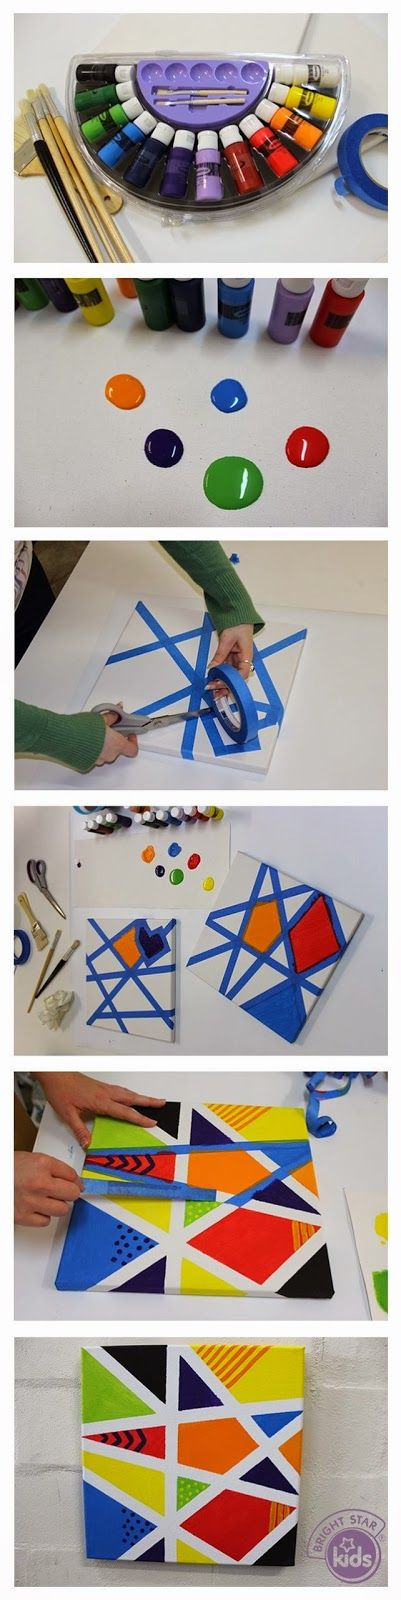 Plan Provision: Canvas Art. This would be so much fun with the kid...